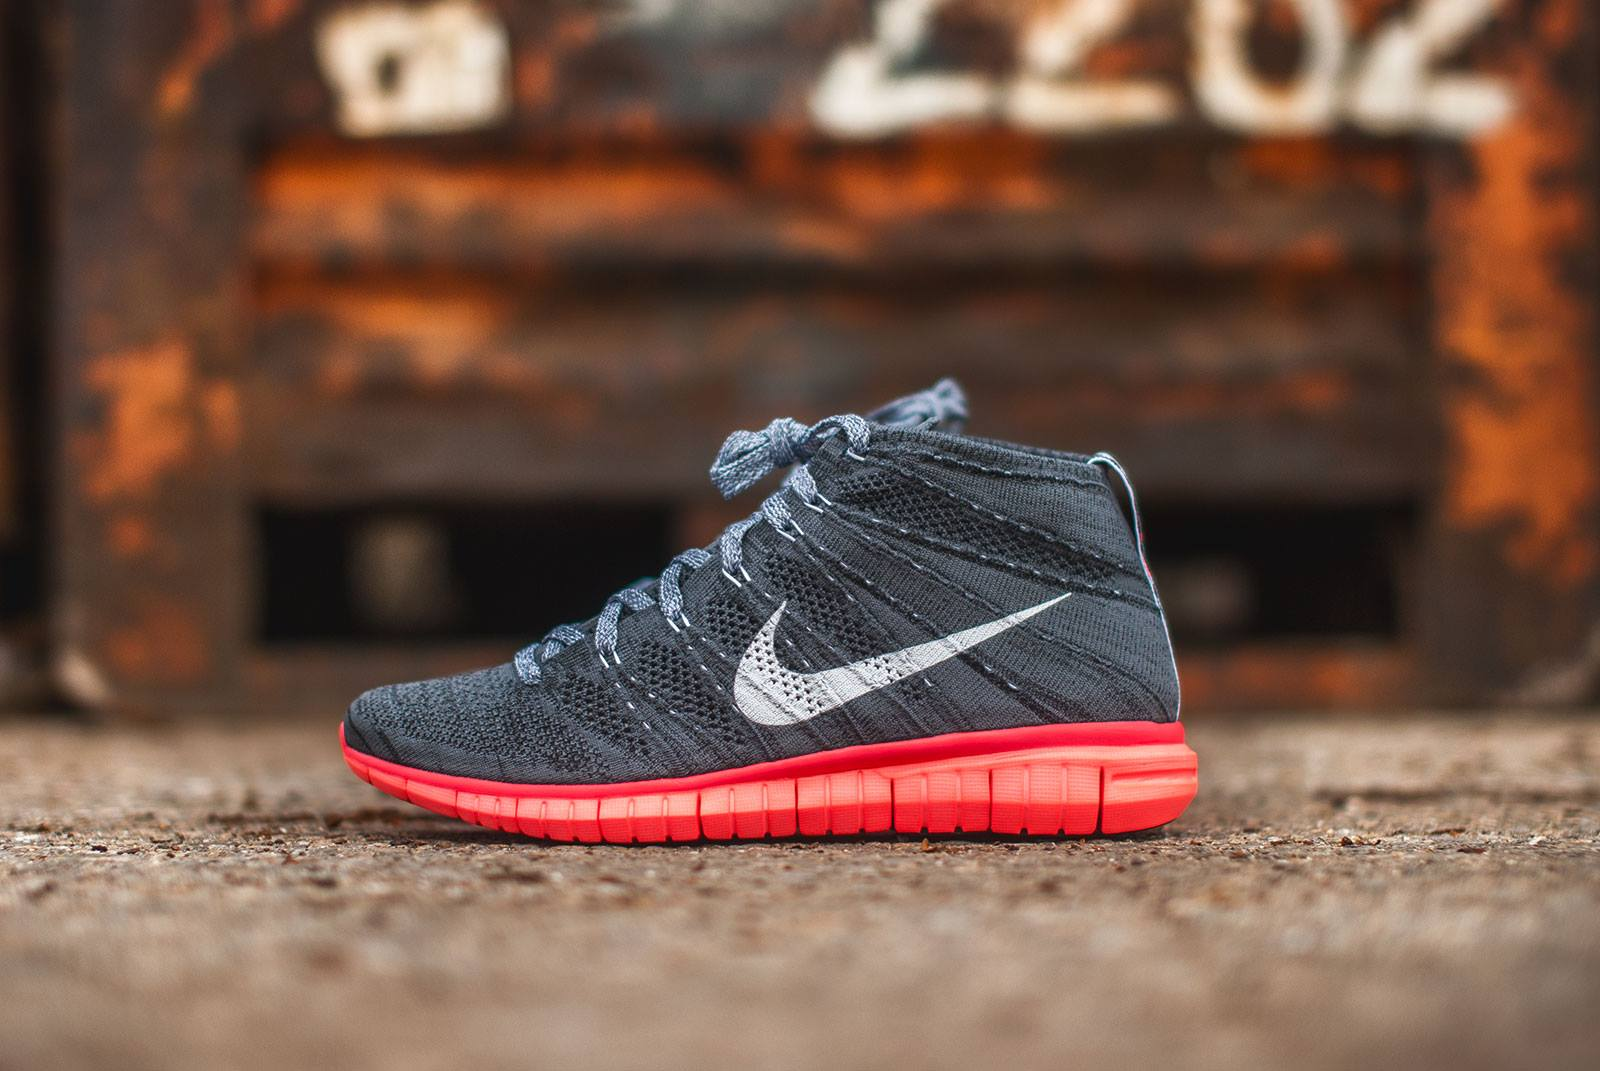 nike free flyknit chukka femme new balance running 996. Black Bedroom Furniture Sets. Home Design Ideas